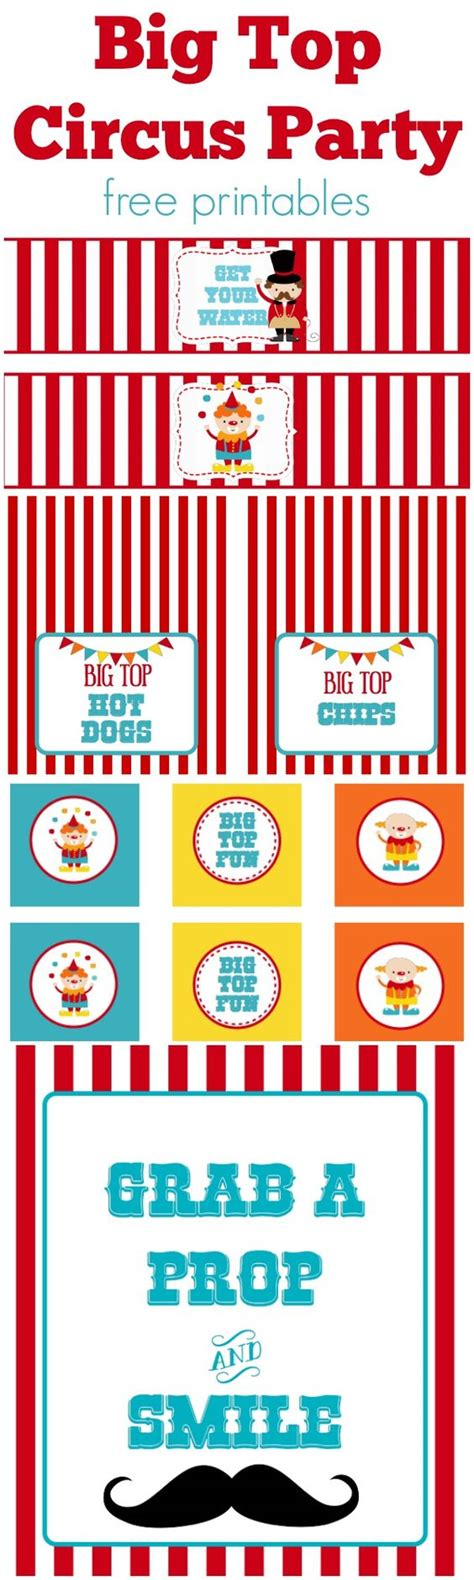 free printable carnival party decorations circus party free printables b pinterest party